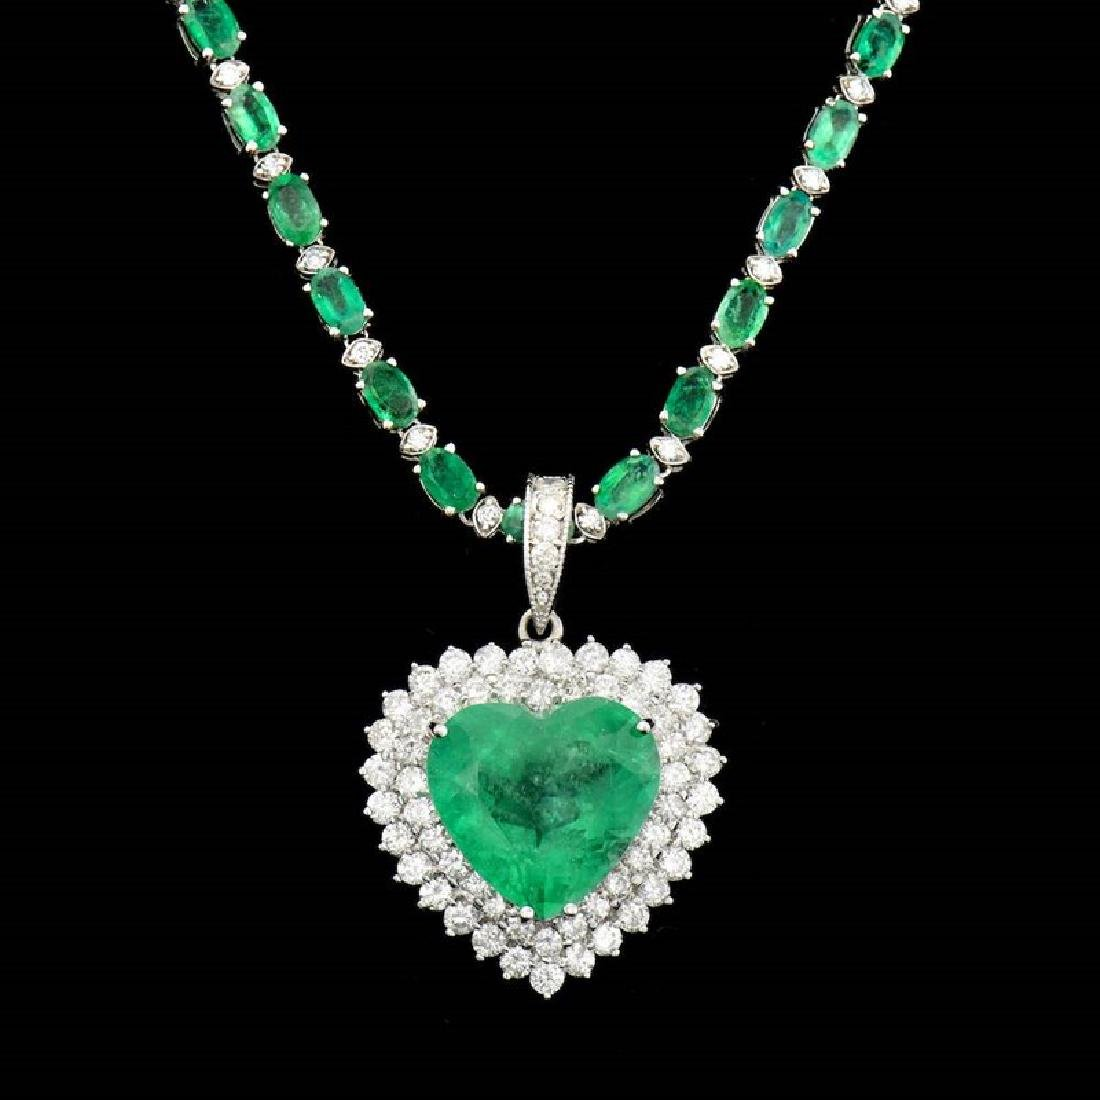 13.75CT NATURAL COLOMBIAN EMERALD 18K W/G PENDANT AND